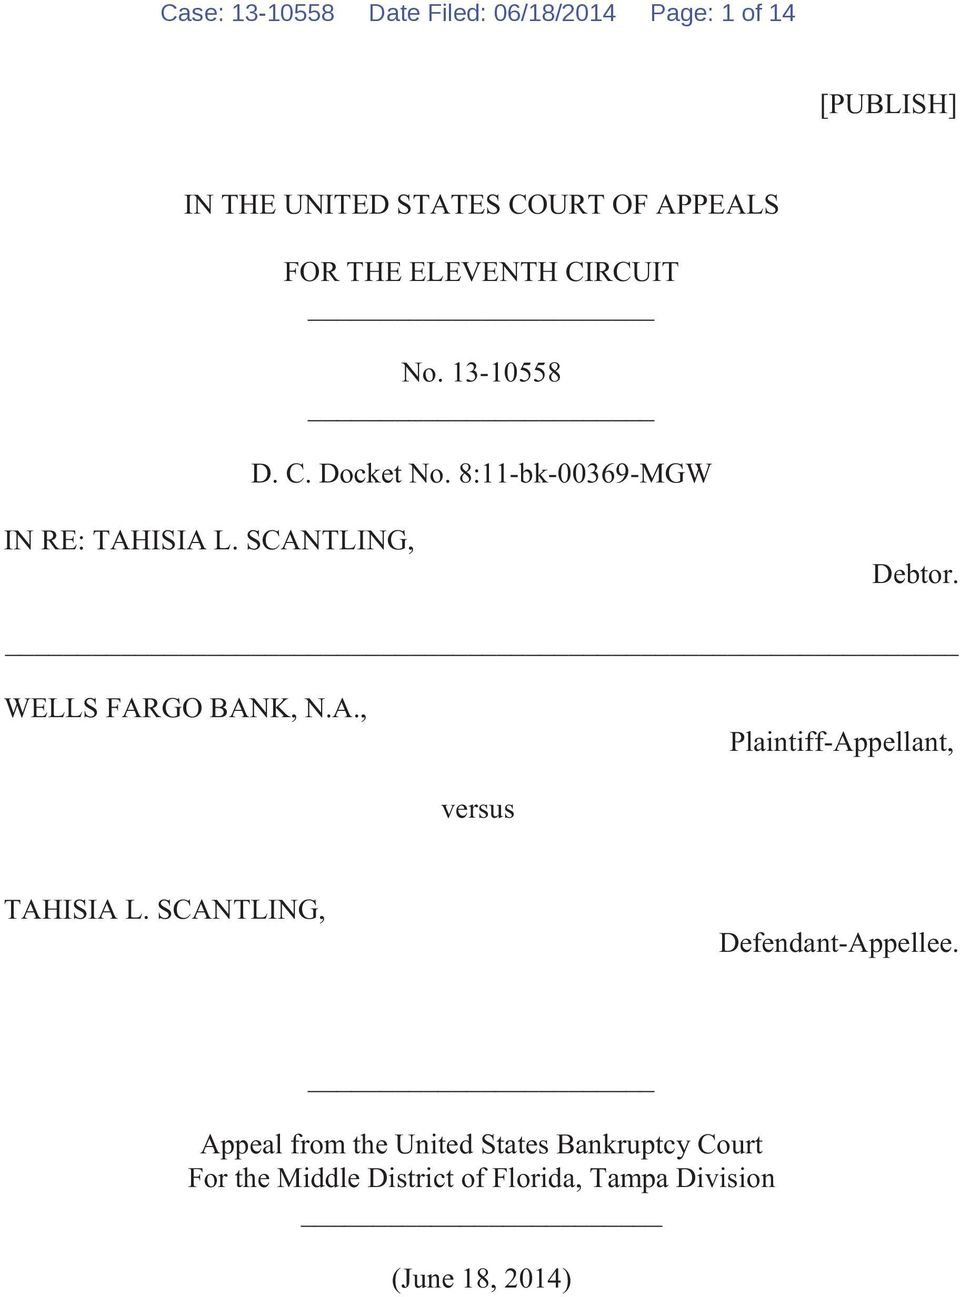 WELLS FARGO BANK, N.A., Plaintiff-Appellant, versus TAHISIA L. SCANTLING, Defendant-Appellee.